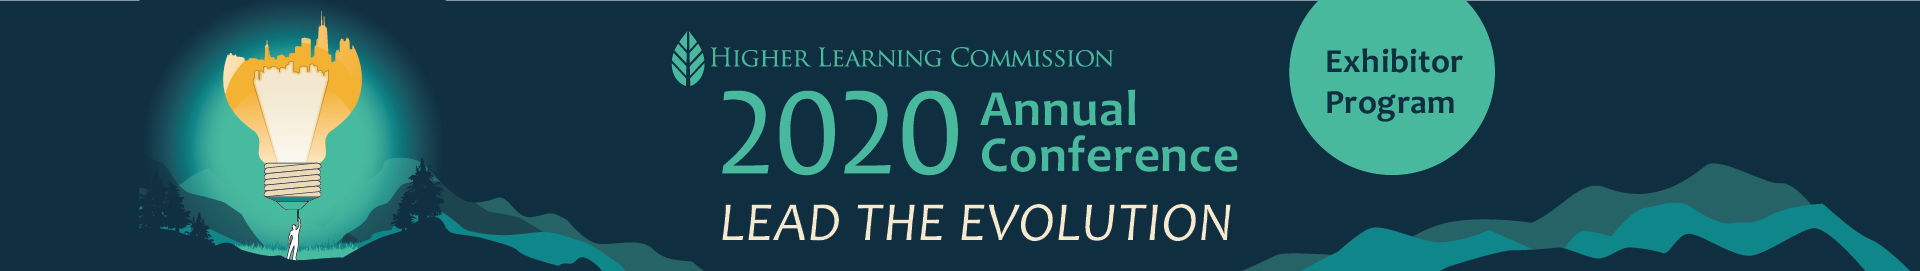 2020 Annual Conference Exhibitor Program